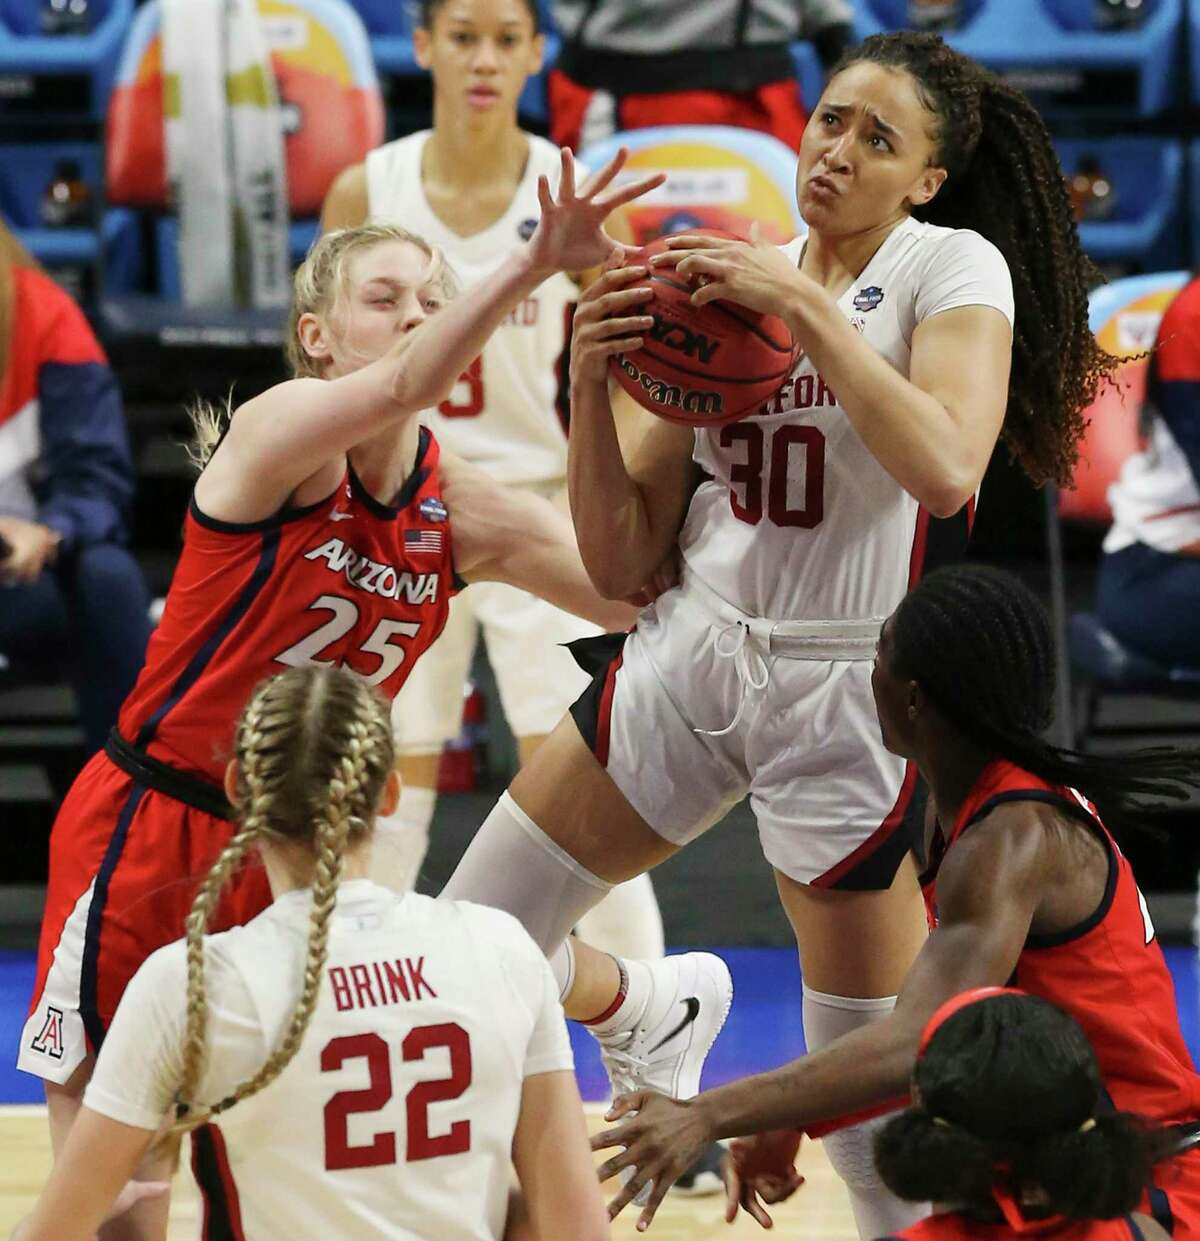 Stanford's Haley Jones (30) attempts a shot against Arizona's Cate Reese (25) during their 2021 NCAA Women's Final Four National Champion basketball game at the Alamodome on Sunday, Apr. 4, 2021.